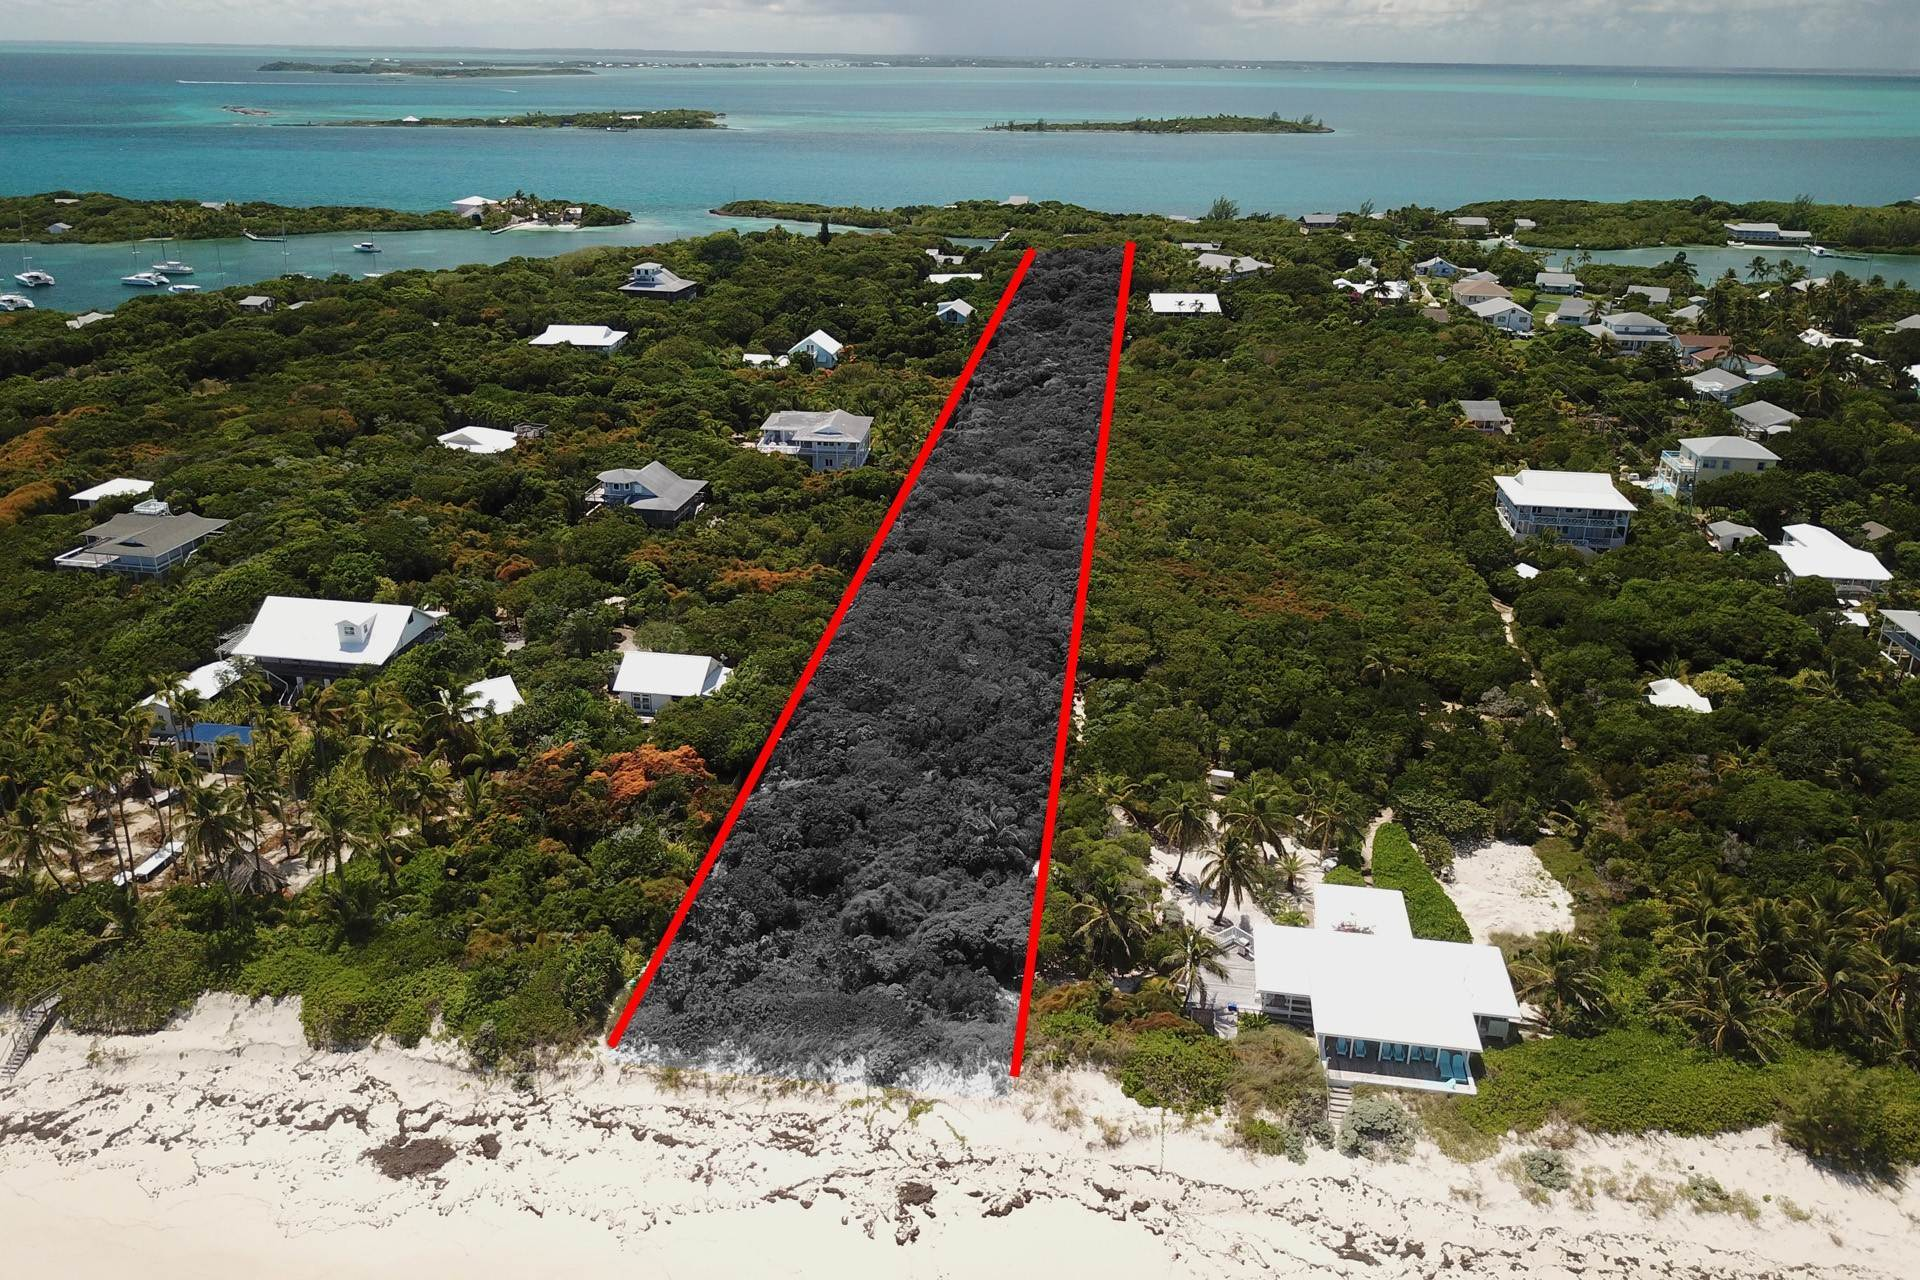 Land for Sale at Harbour Beach, Man O War Cay, Abaco Cays - MLS 39204 Man-O-War Cay, Abaco, Bahamas